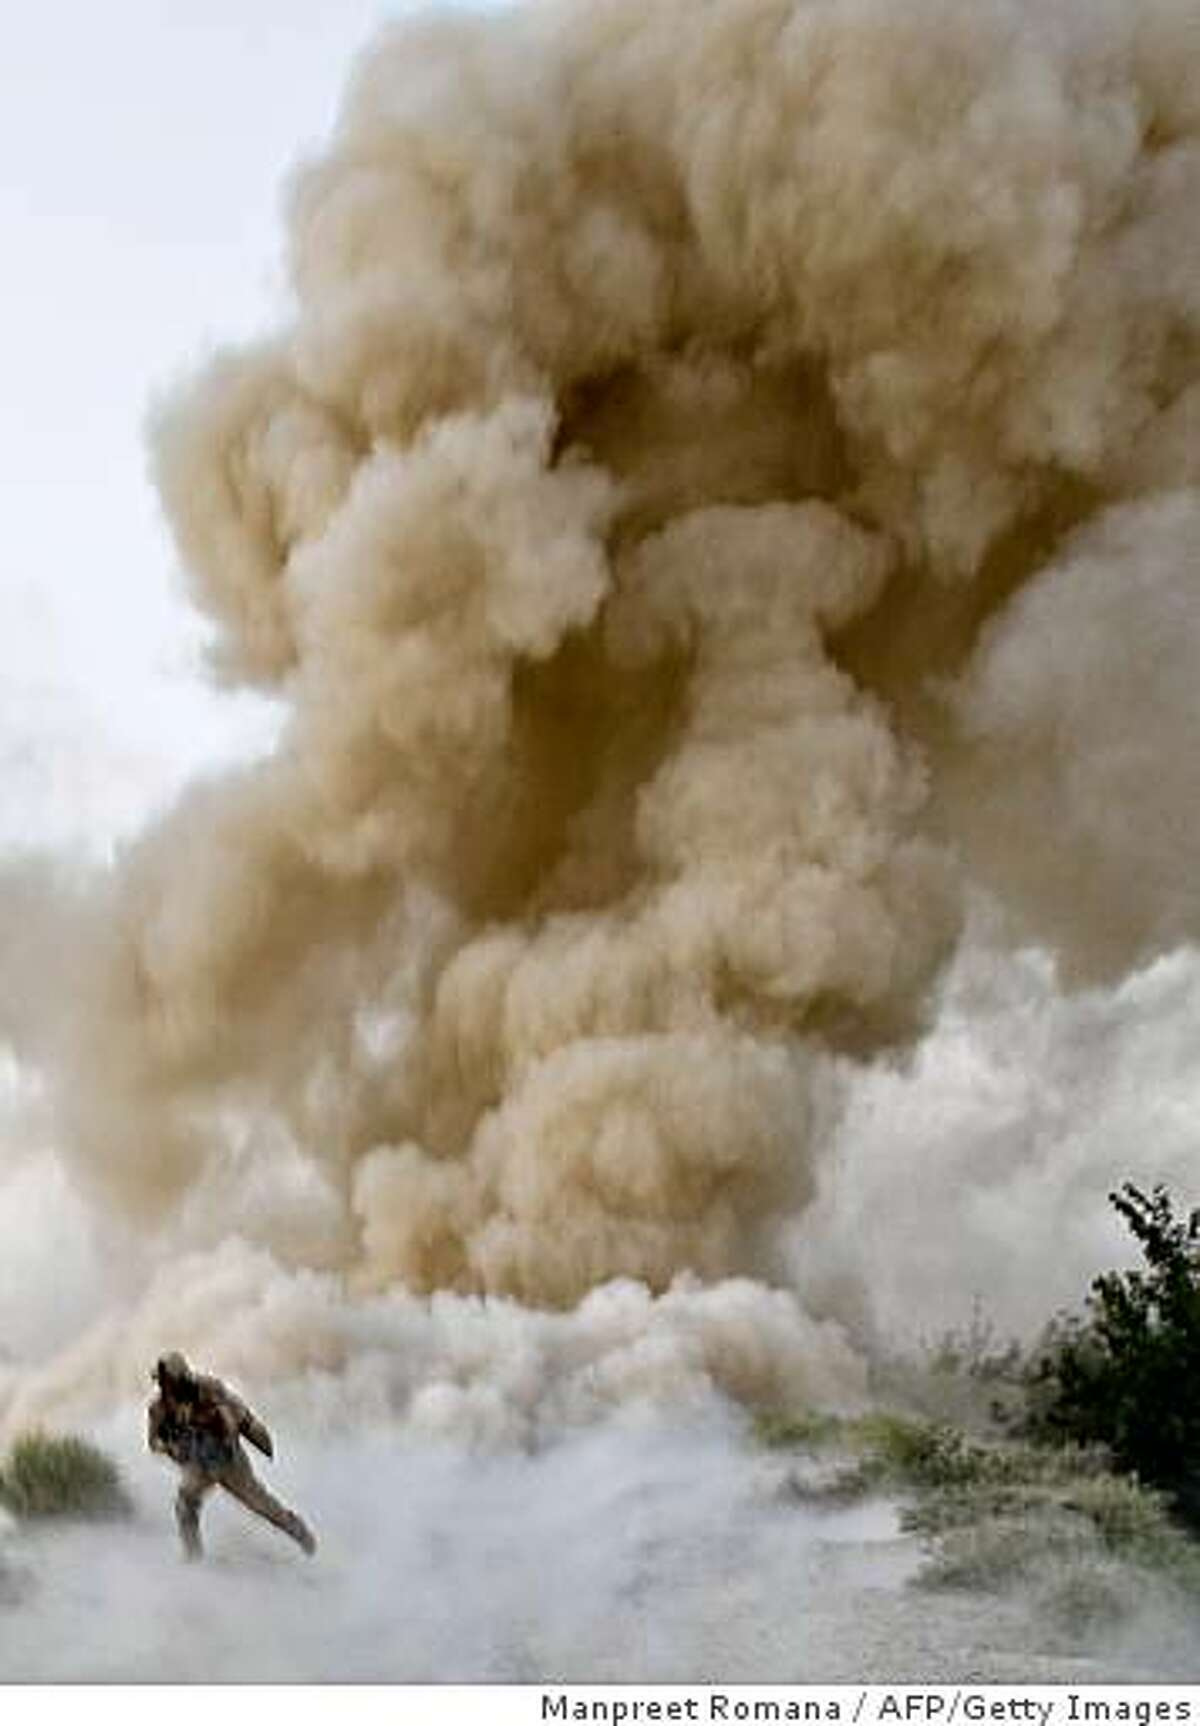 A US Marine of 2nd Marine Expeditionary Brigade runs to safety moments after an IED blast in Garmsir district of Helmand Province in Afghanistan on July 13, 2009. Two US Marine soldiers were killed when the explosion occured as they tried to clear a route into the Taliban heartland of southern Helmand province. About 4,000 US Marines are battling insurgents in a massive offensive launched in the south early this month to clear Taliban militants out of strongholds ahead of presidential and provincial council elections scheduled for August 20. AFP PHOTO/Manpreet ROMANA (Photo credit should read MANPREET ROMANA/AFP/Getty Images)